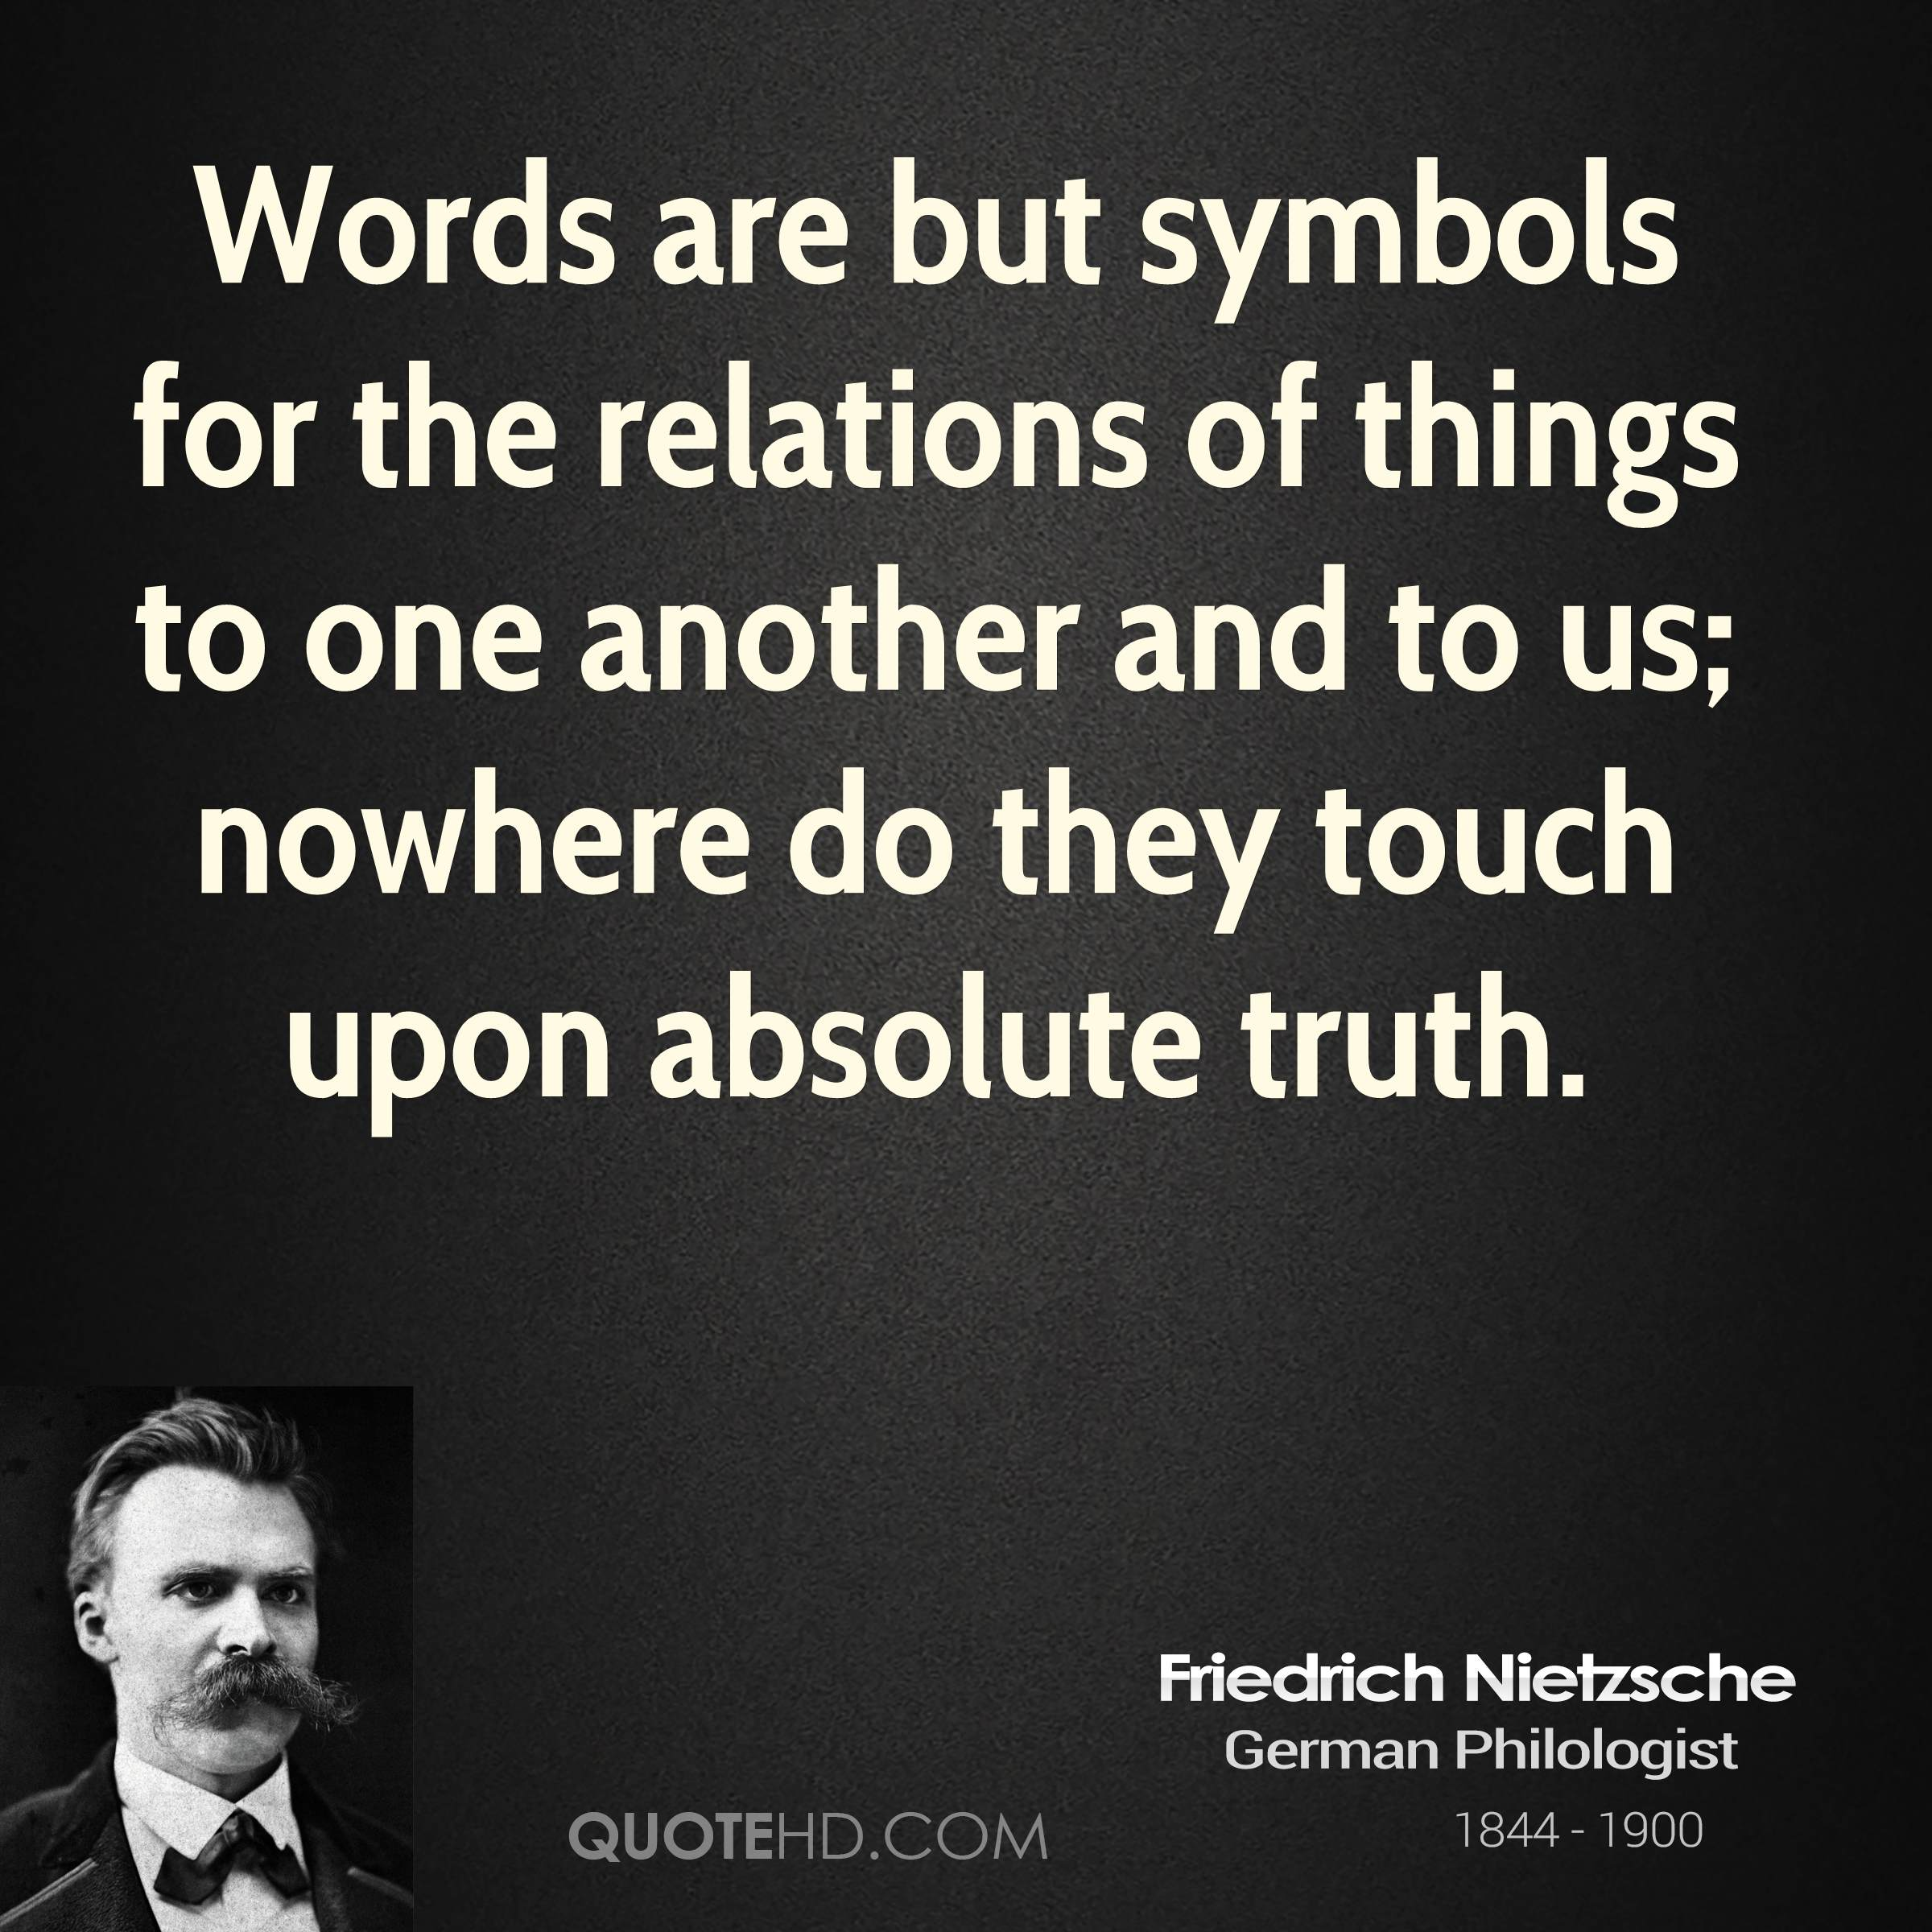 Words are but symbols for the relations of things to one another and to us; nowhere do they touch upon absolute truth.